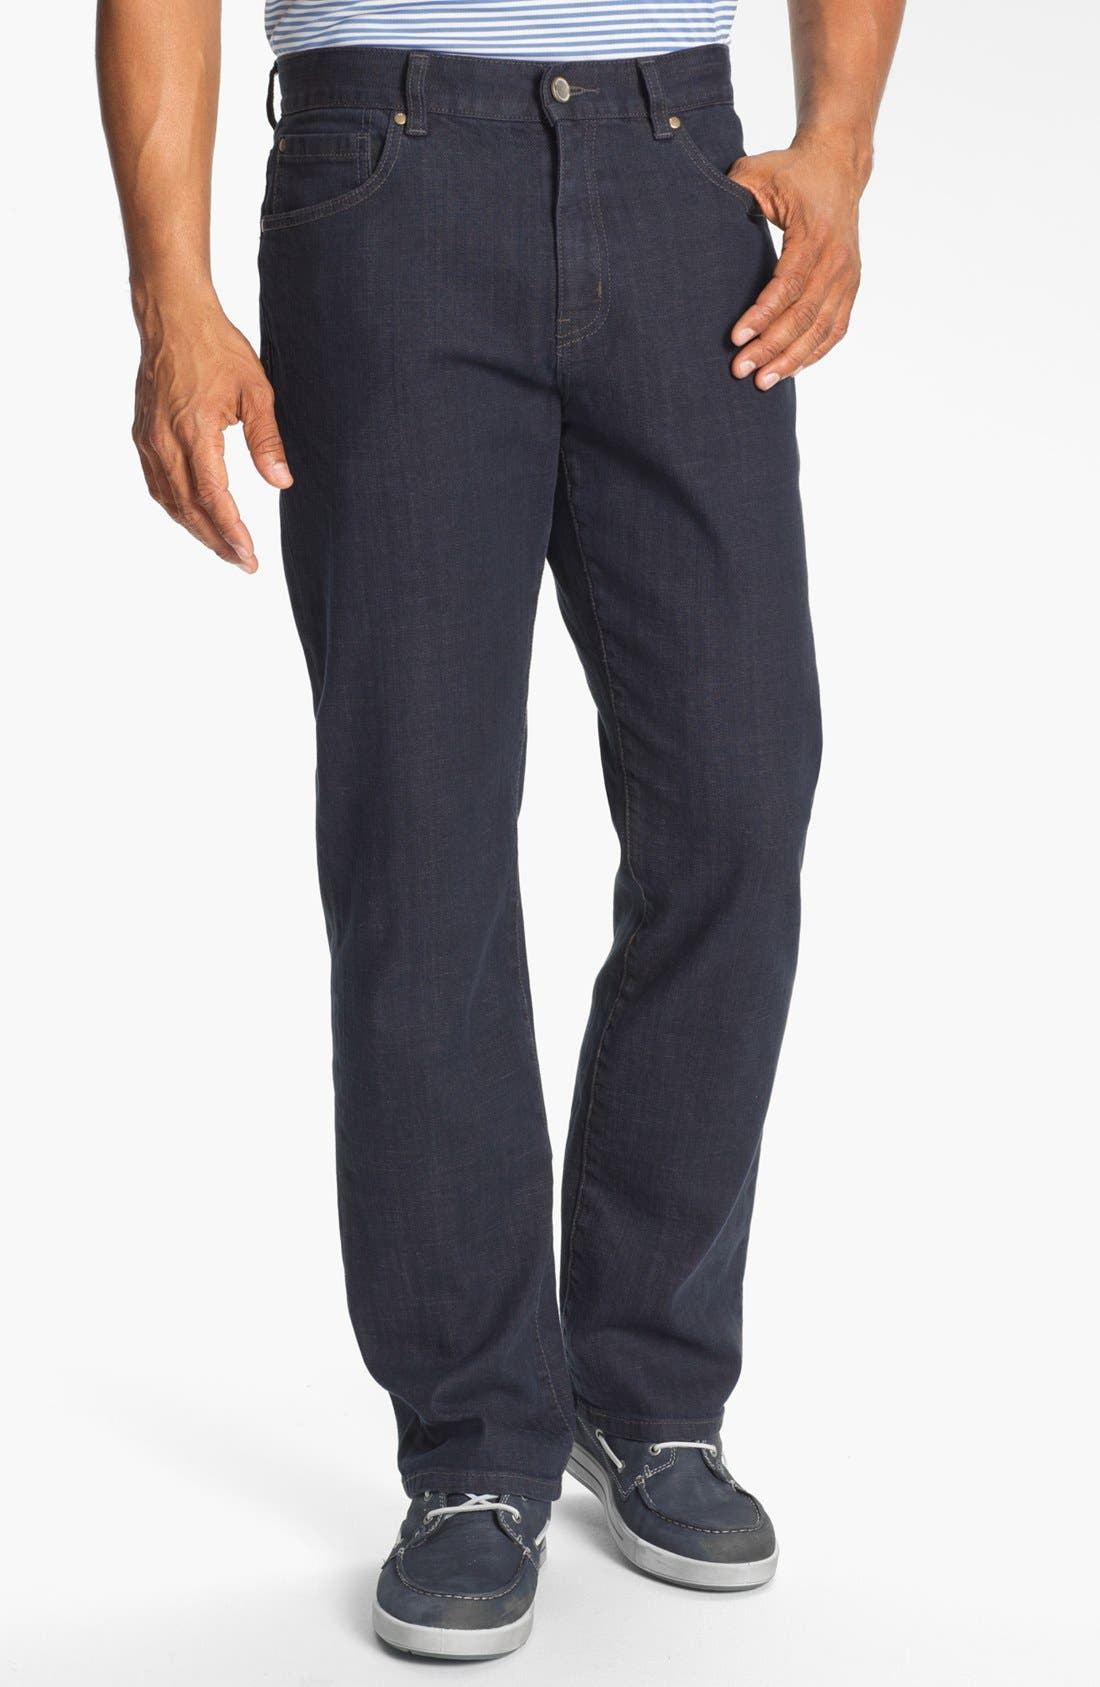 Main Image - Cutter & Buck 'Madison Park' Relaxed Fit Jeans (Carbon)